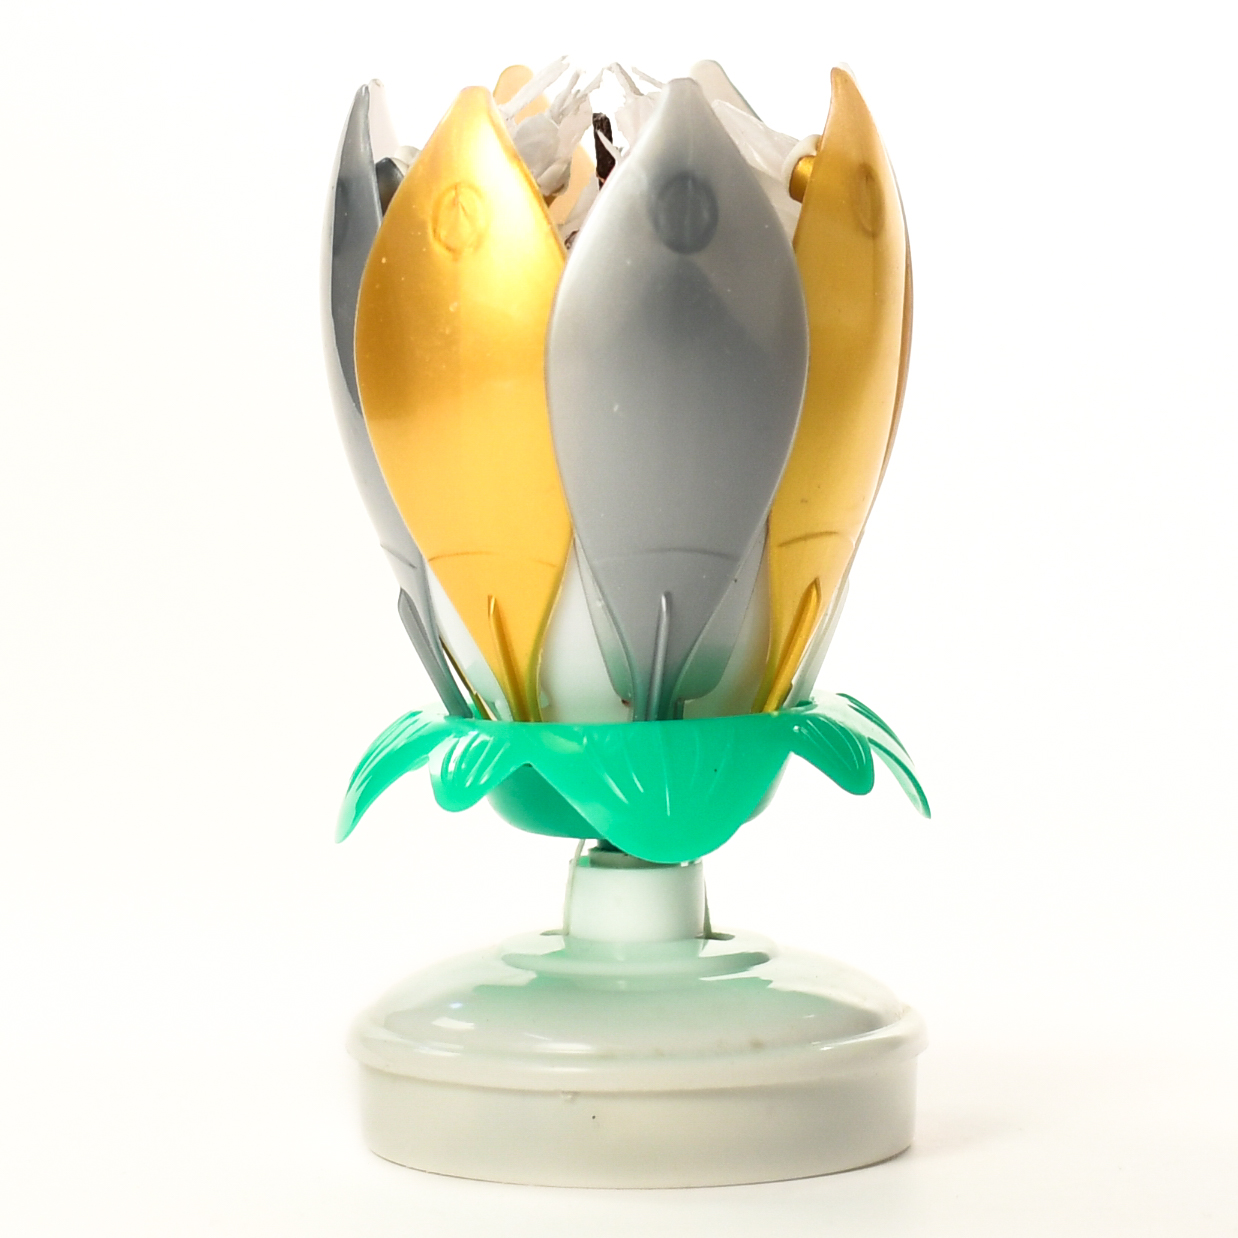 Gold silver white flower musical birthday candles lotus flower gold siver candle closed izmirmasajfo